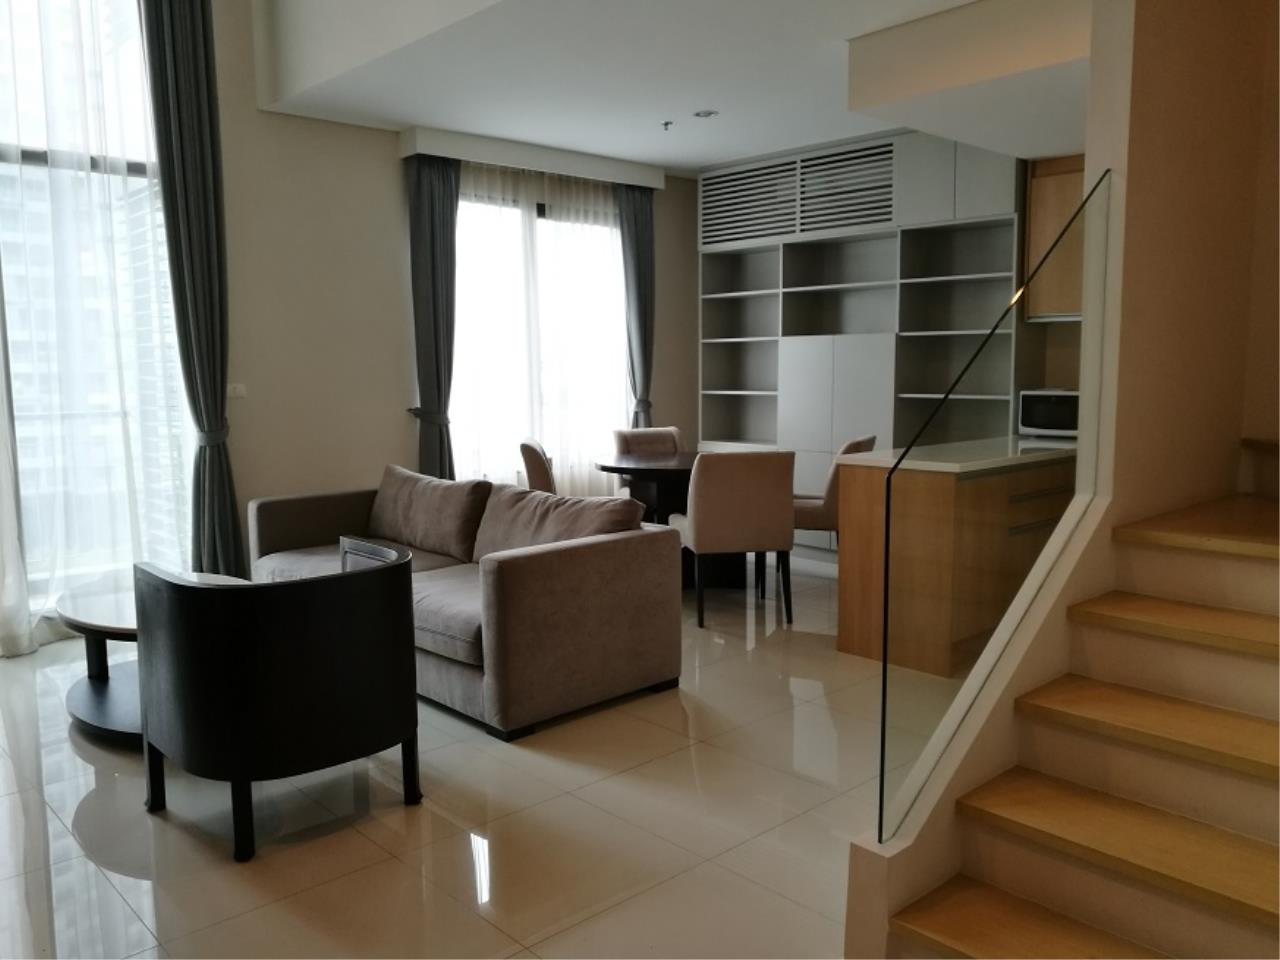 RE/MAX All Star Realty Agency's Villa Asoke for sale/rent – walk to MRT Petchaburi 1